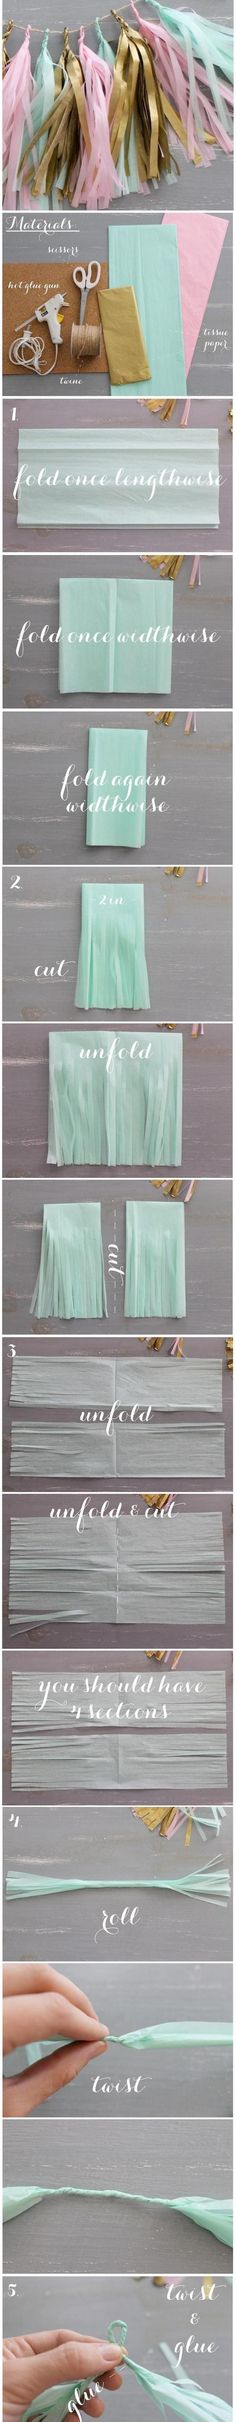 How to make tassel garland- perfect for a celebration & easy to make!